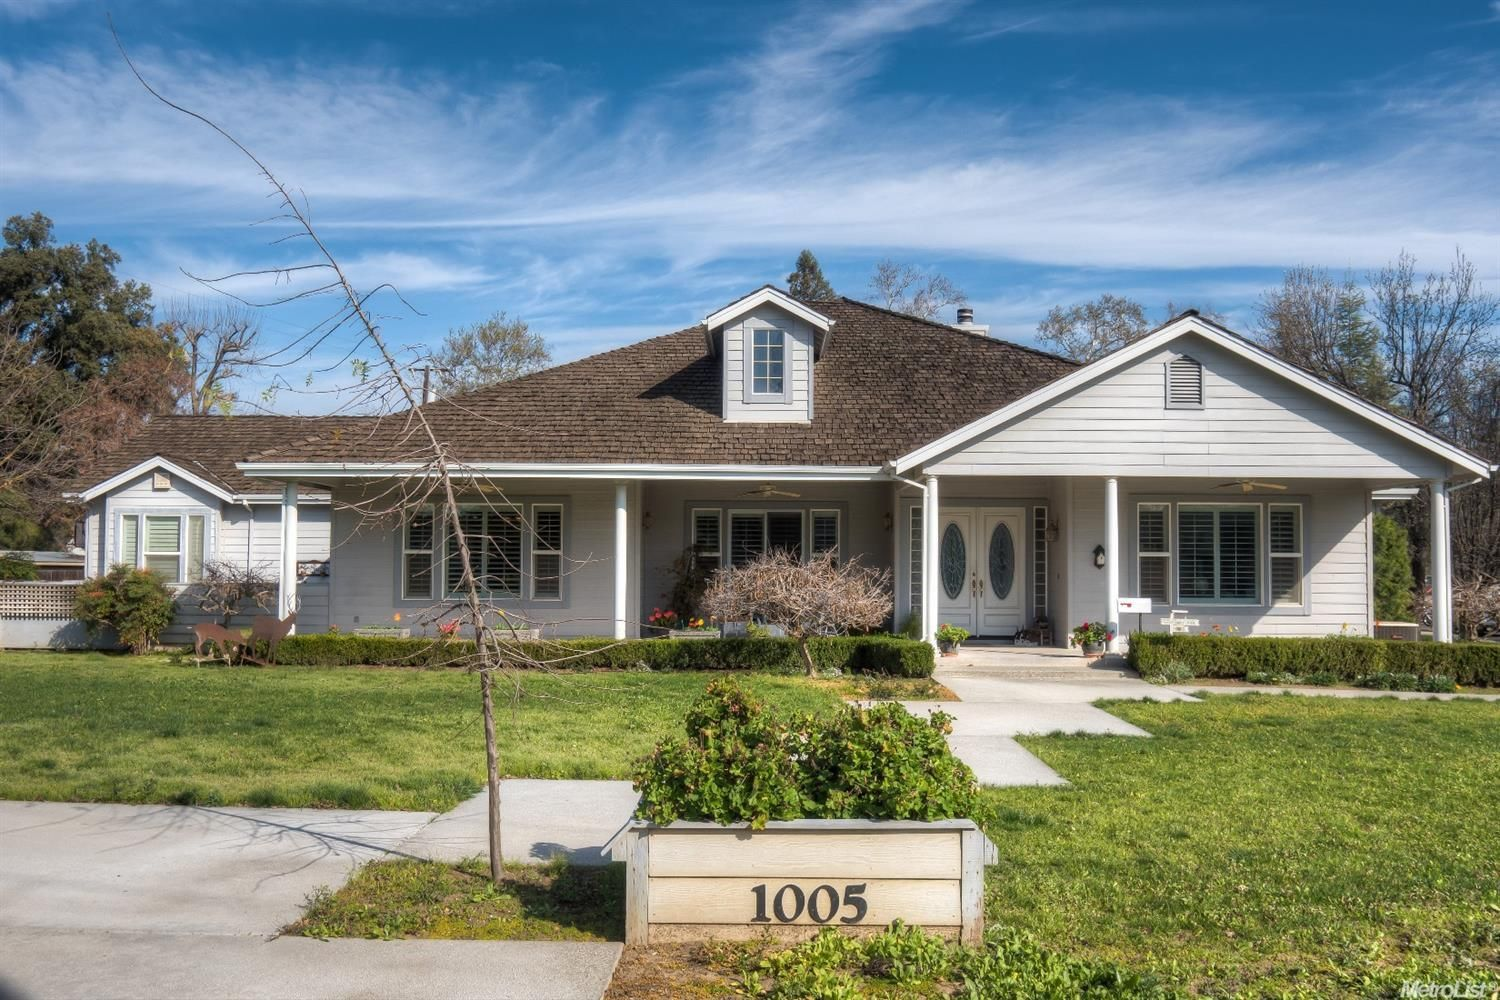 $835000 - 1005 Mc Kinley Ave Woodland CA 95695 Prepare to be impressed! Quality and attention to detail every where you look in this exquisite custom home  built in 2000. Expansive spaces make this home so liveable!  All the 'bells and whistles' 3 bedrooms PLUS large office. Huge lot (over 1/2 acre)  with fabulous swimming pool/spa and plenty of room to garden and enjoy life!  Shown by appointment only. Give me a call for your personal tour of this exceptional property in one of Woodland…